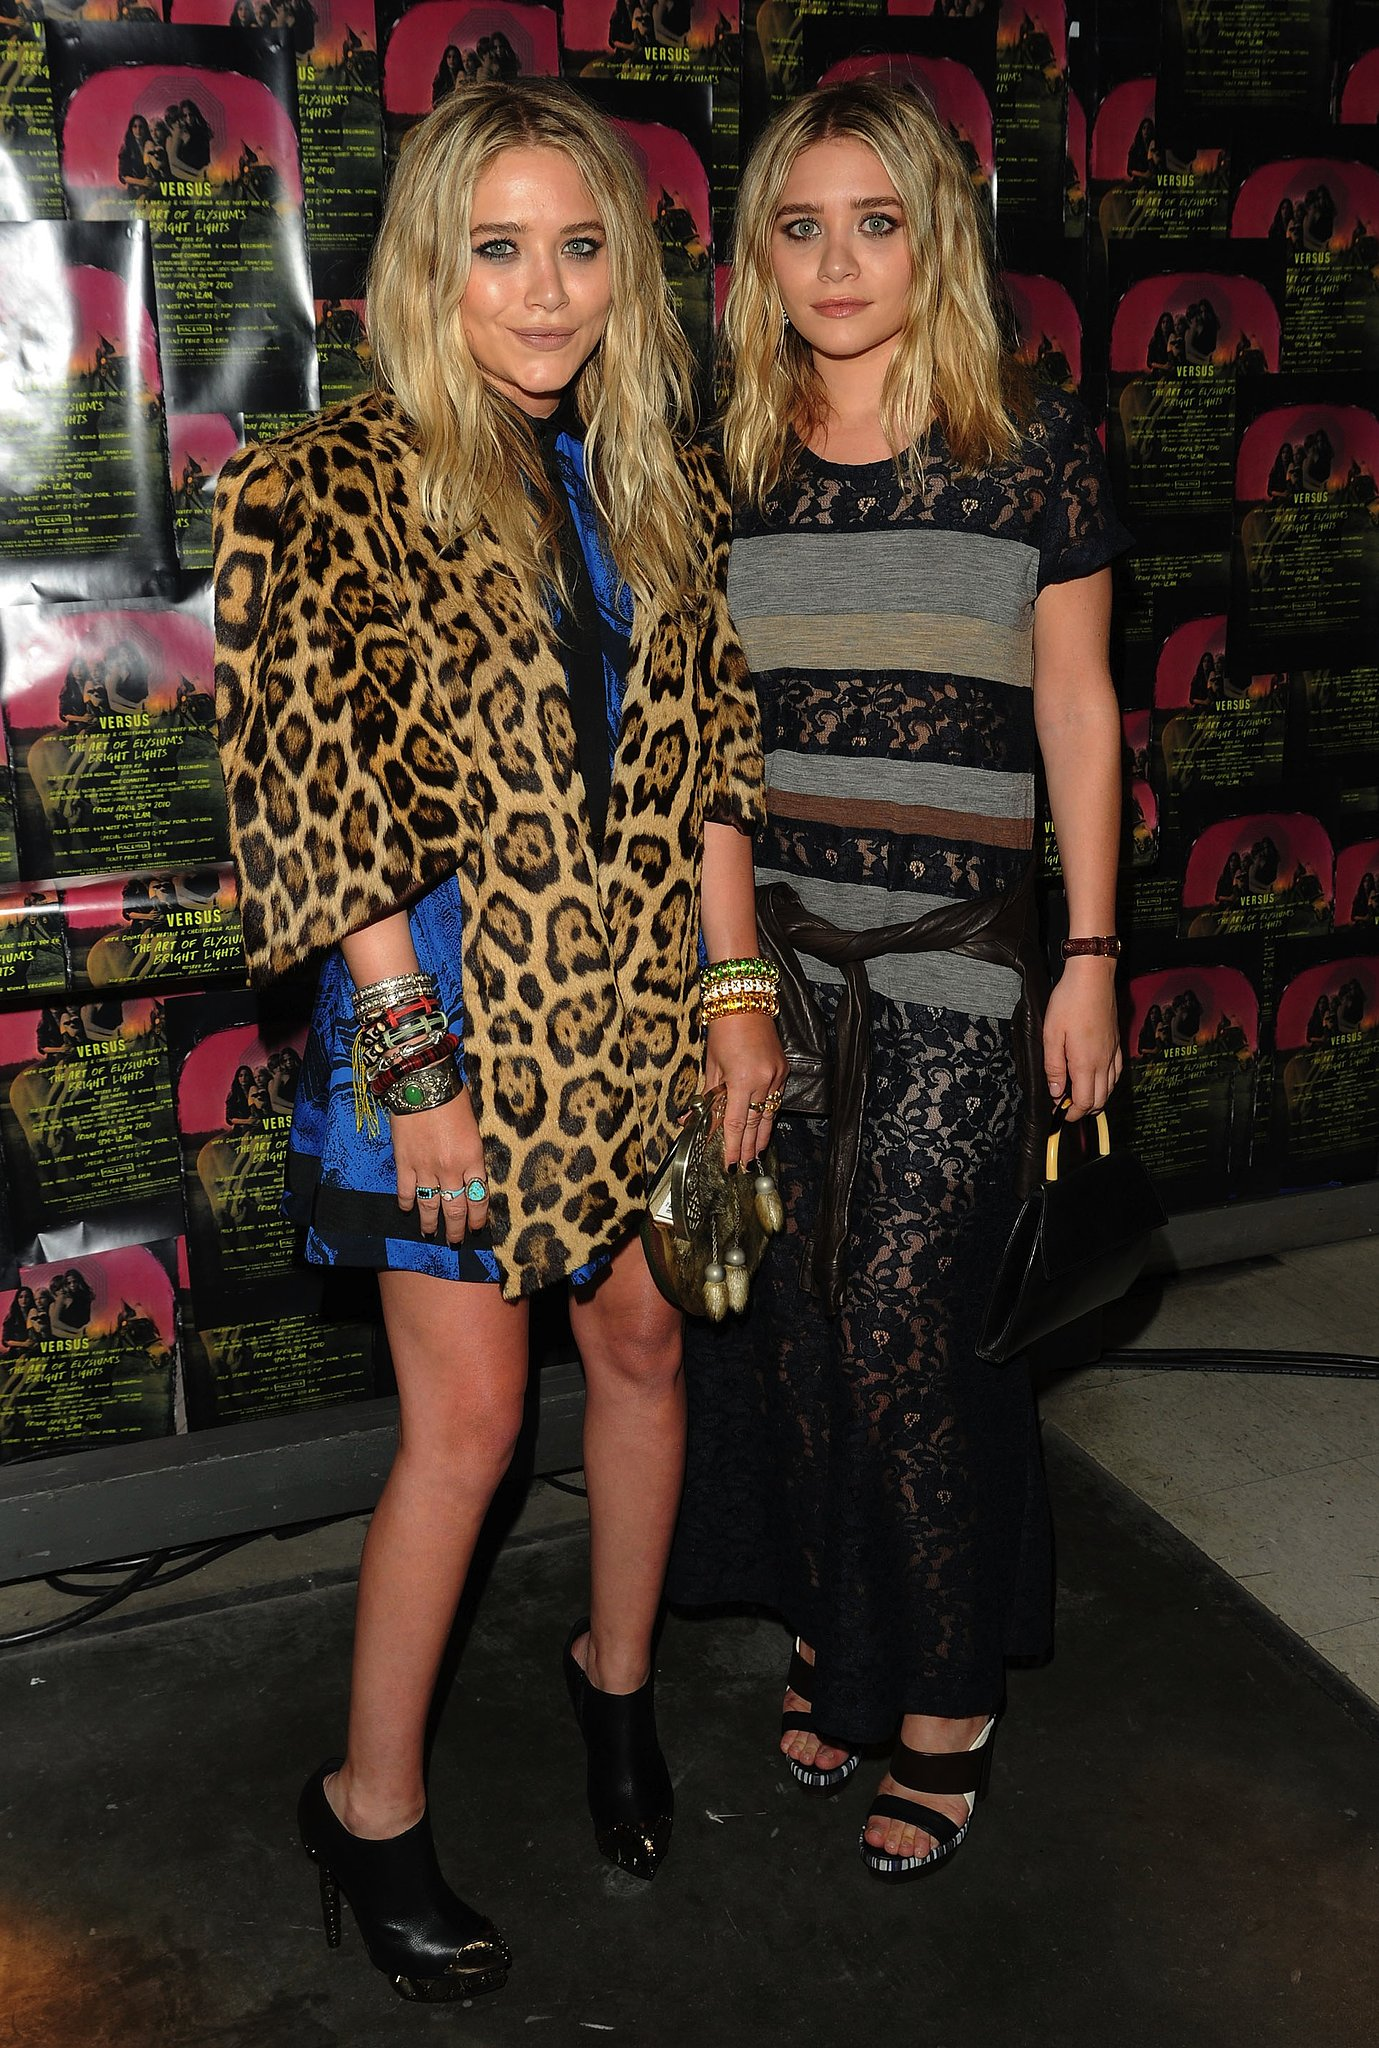 """Twinning combo: In May 2010, MK&A married prints and patterns at The Art of Elysium and Versus's """"Bright Lights"""" fundraiser in NYC.  Mary-Kate topped her brilliant blue printed mini with a leopard cape and serious stacks of arm candy. Ashley cinched her paneled lace Comme des Garcons dress with a chocolate-brown leather jacket."""